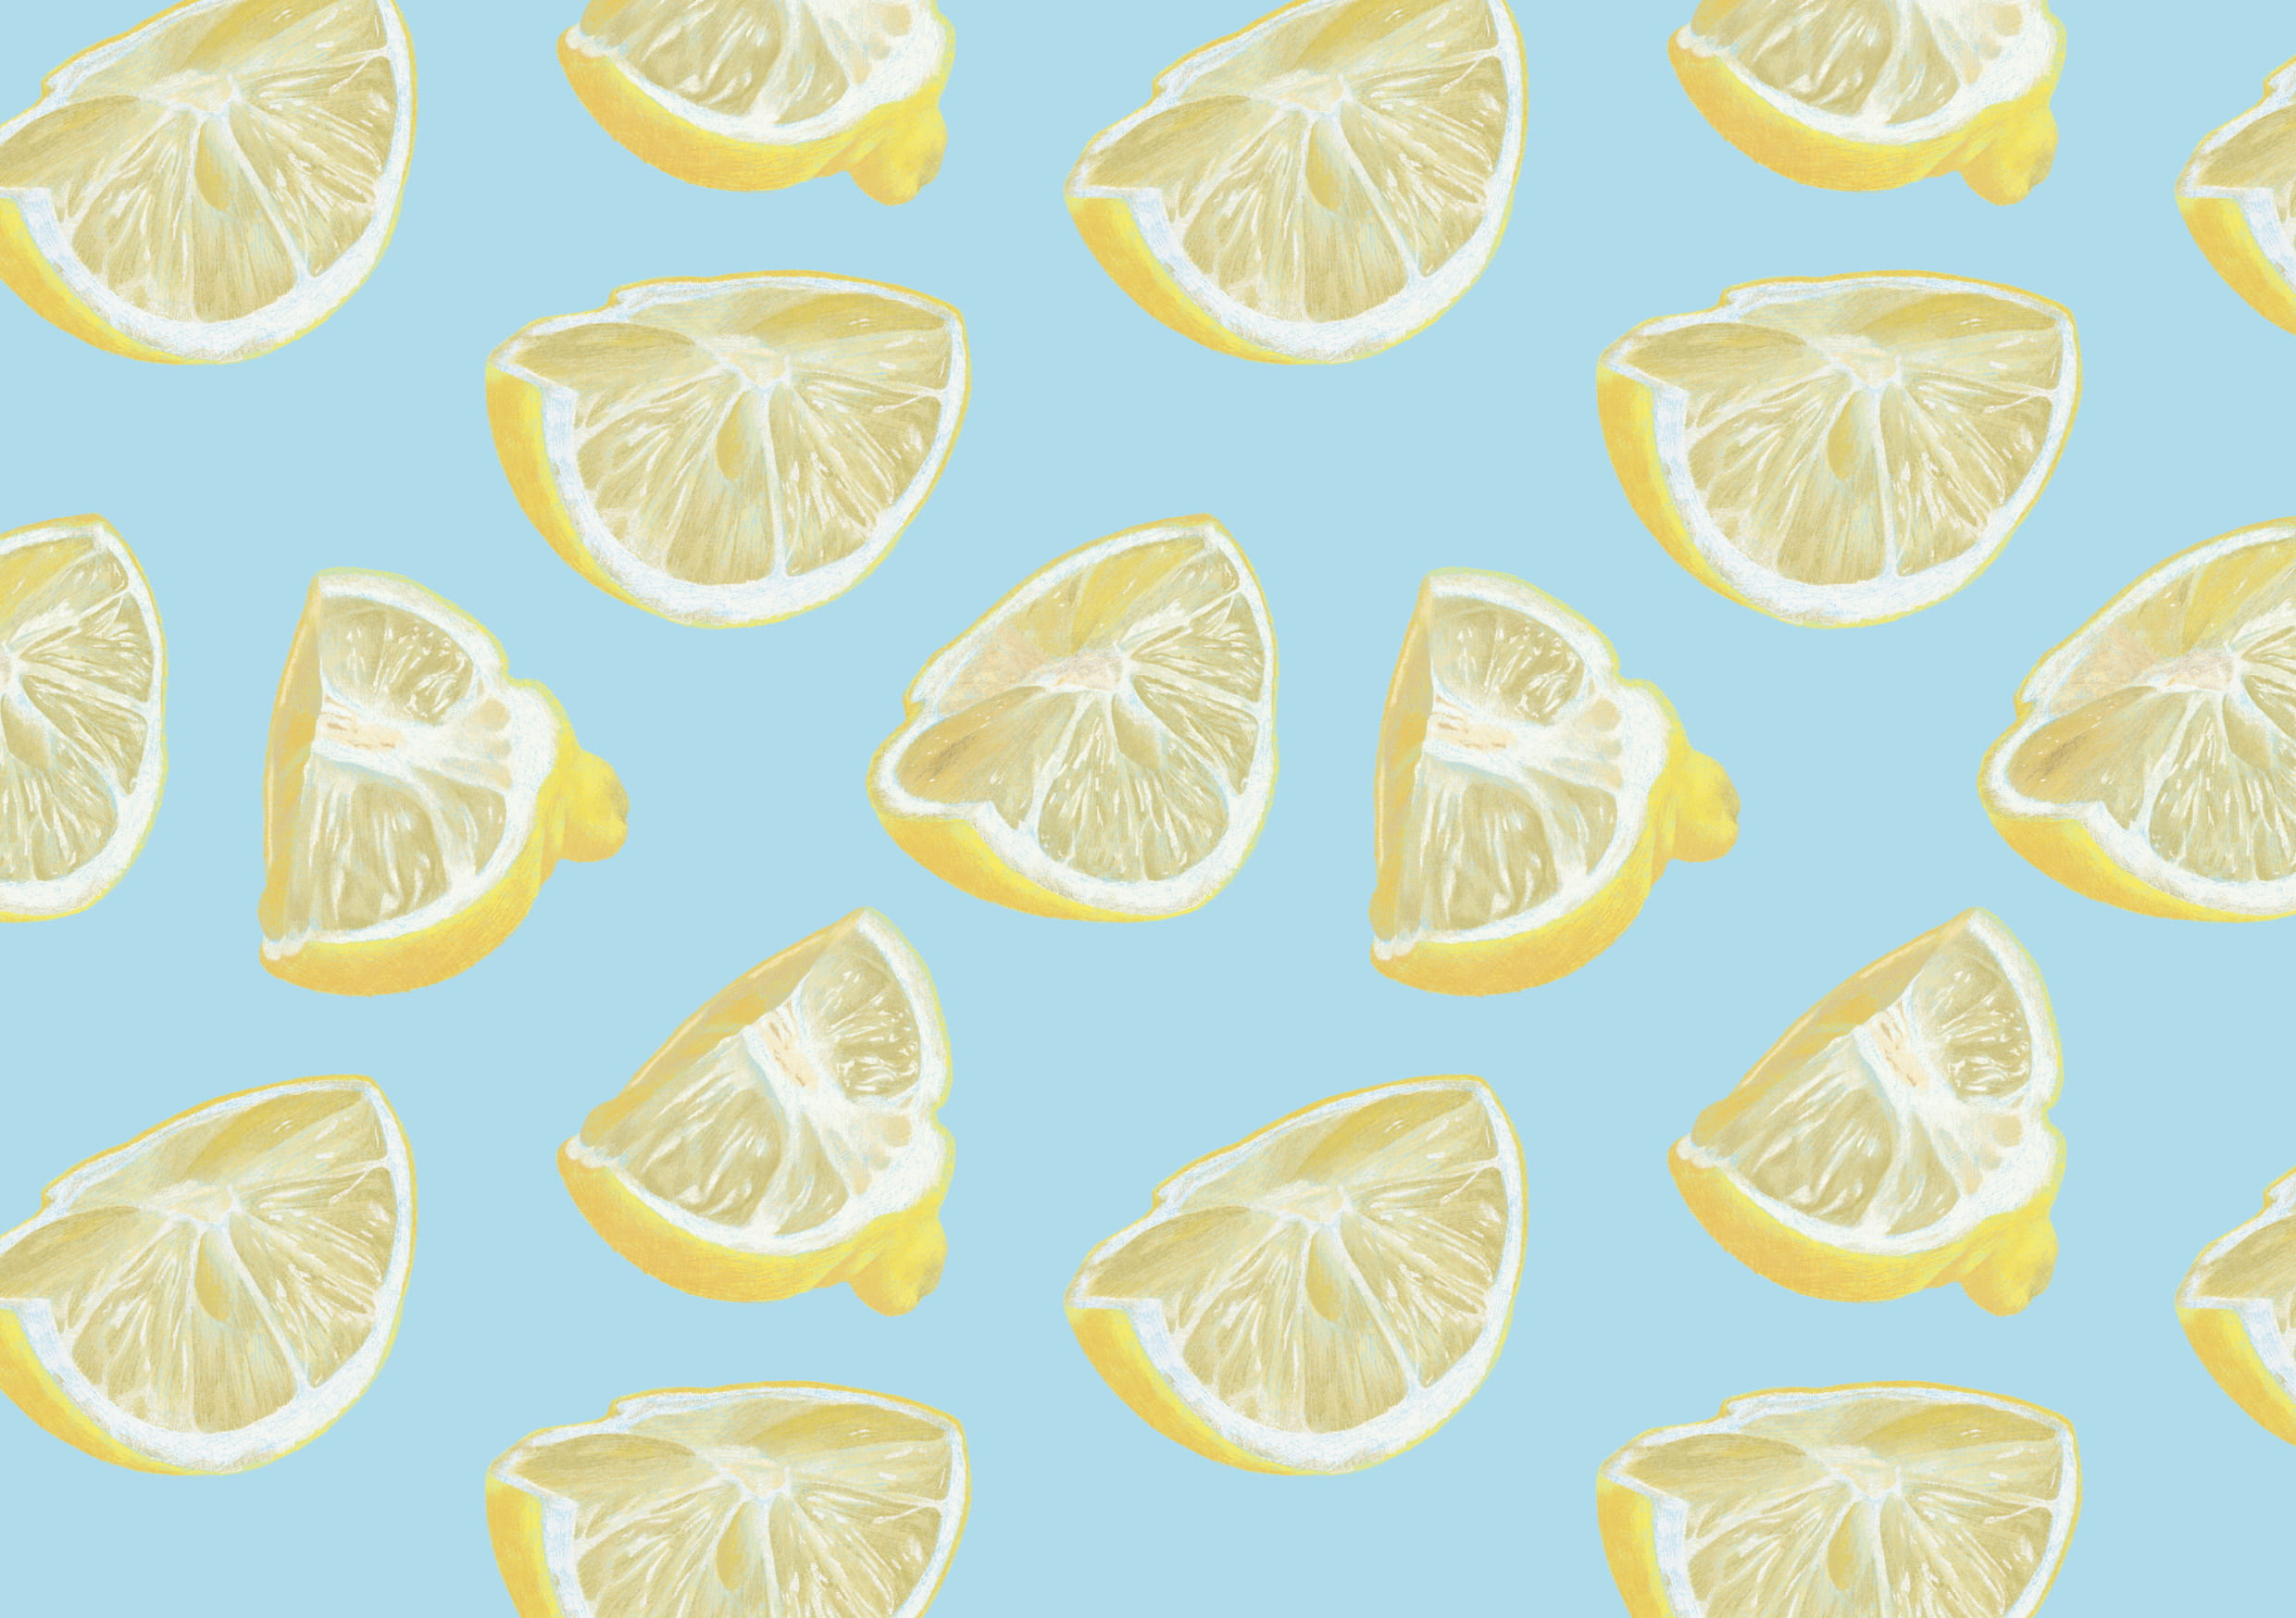 Illustration. A pattern of lemons, against a blue background.